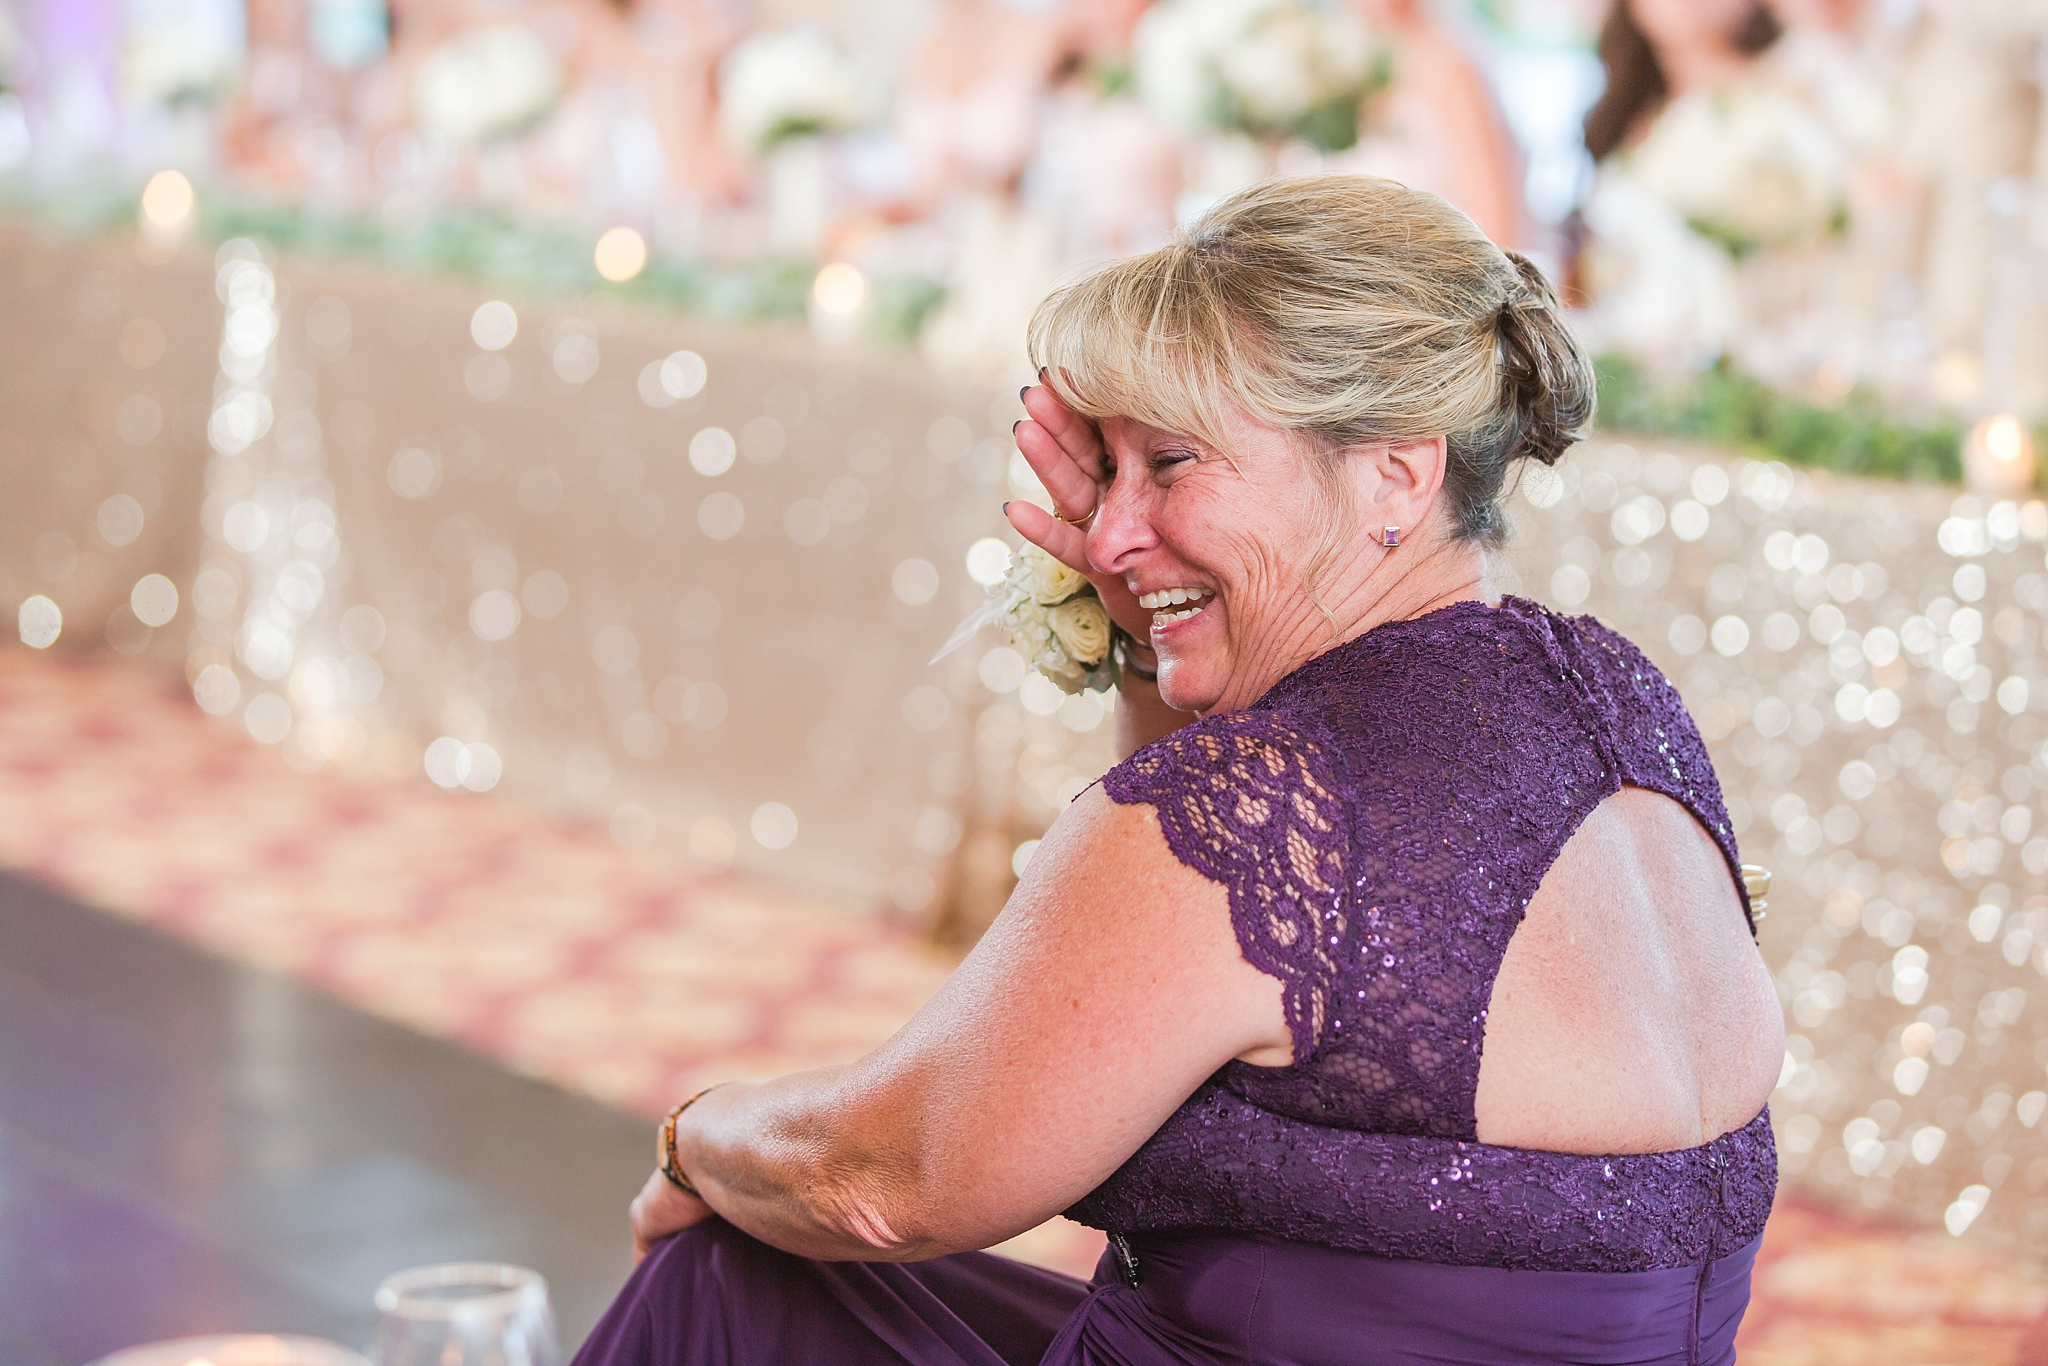 candid-timeless-wedding-photos-at-the-captains-club-in-grand-blanc-michigan-by-courtney-carolyn-photography_0093.jpg